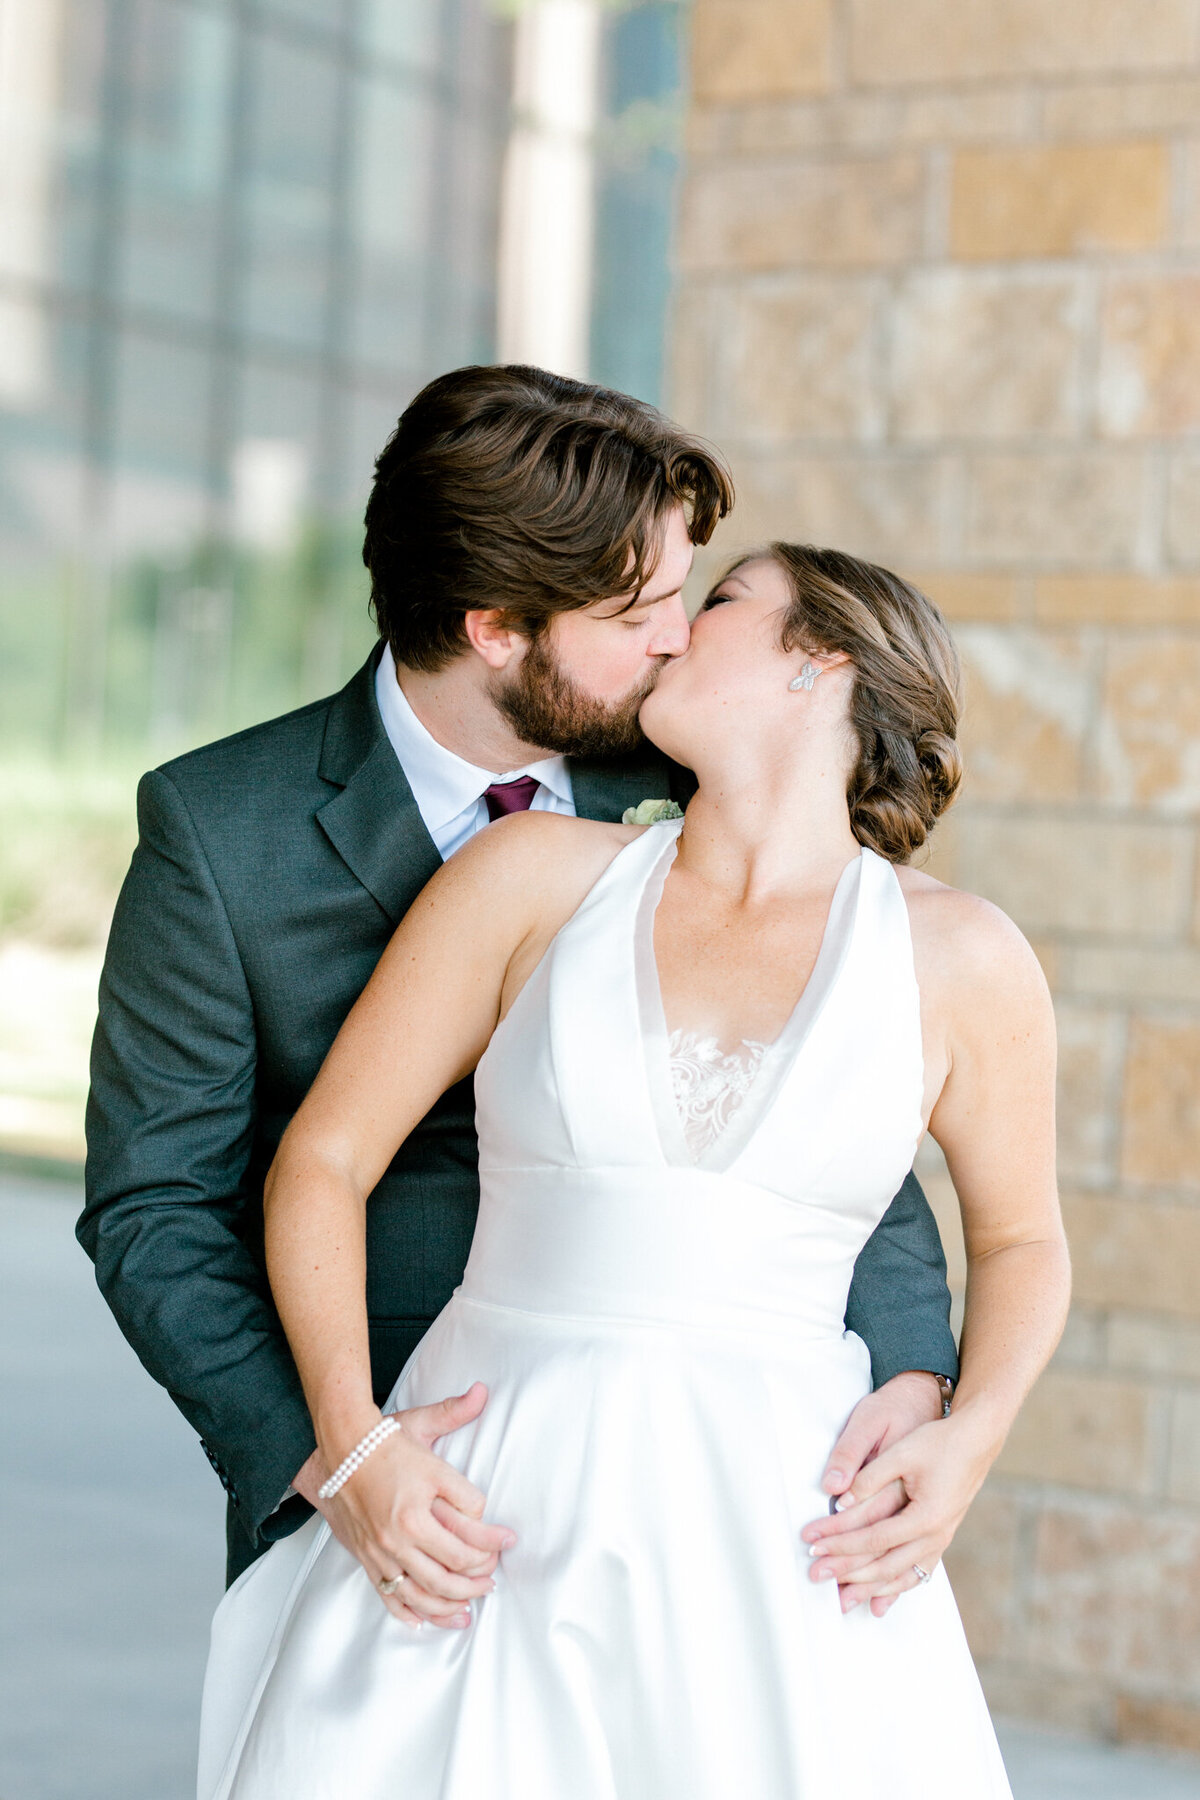 Kaylee & Michael's Wedding at Watermark Community Church | Dallas Wedding Photographer | Sami Kathryn Photography-71